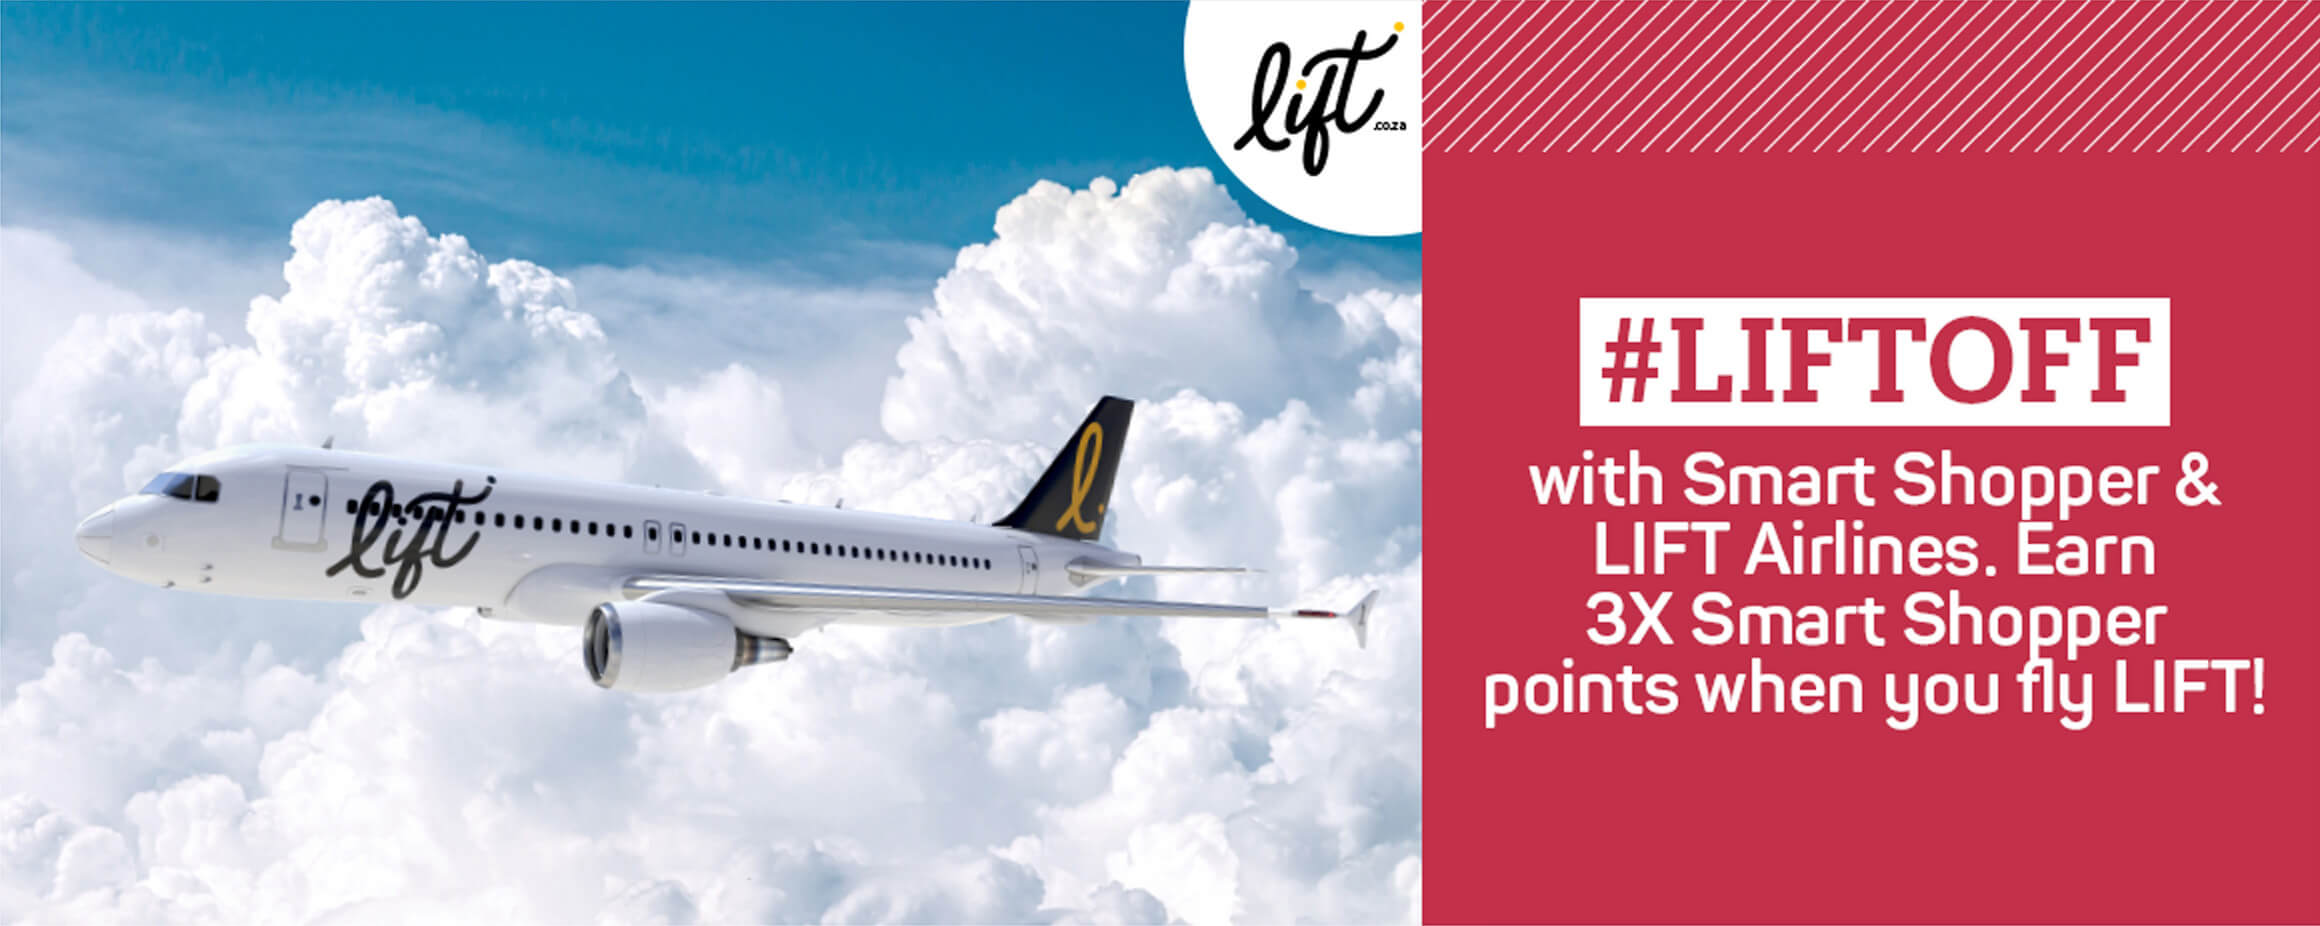 #LIFTOFF with Pick n Pay Smart Shopper & LIft Airlines. Earn 3x Smart Sjopper points when you fly lift!